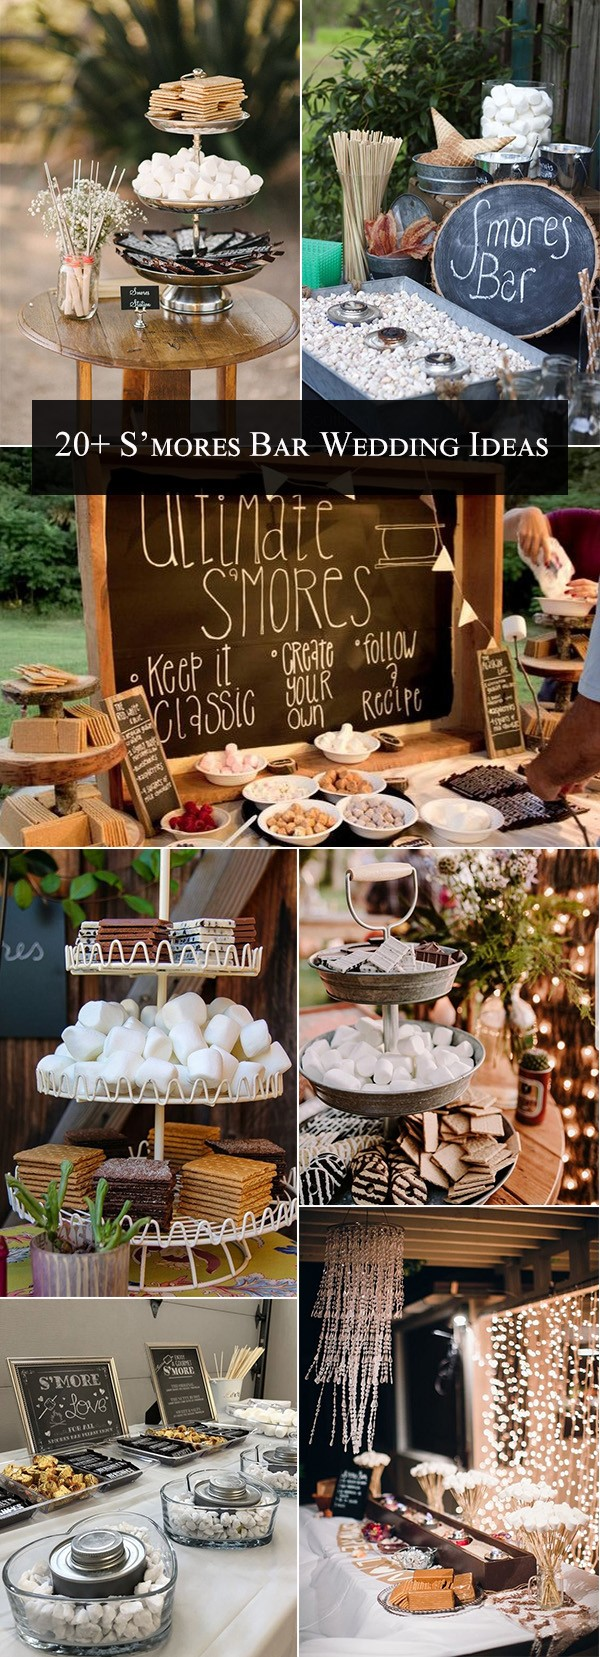 S'mores Bar themed wedding reception ideas for 2018 trends